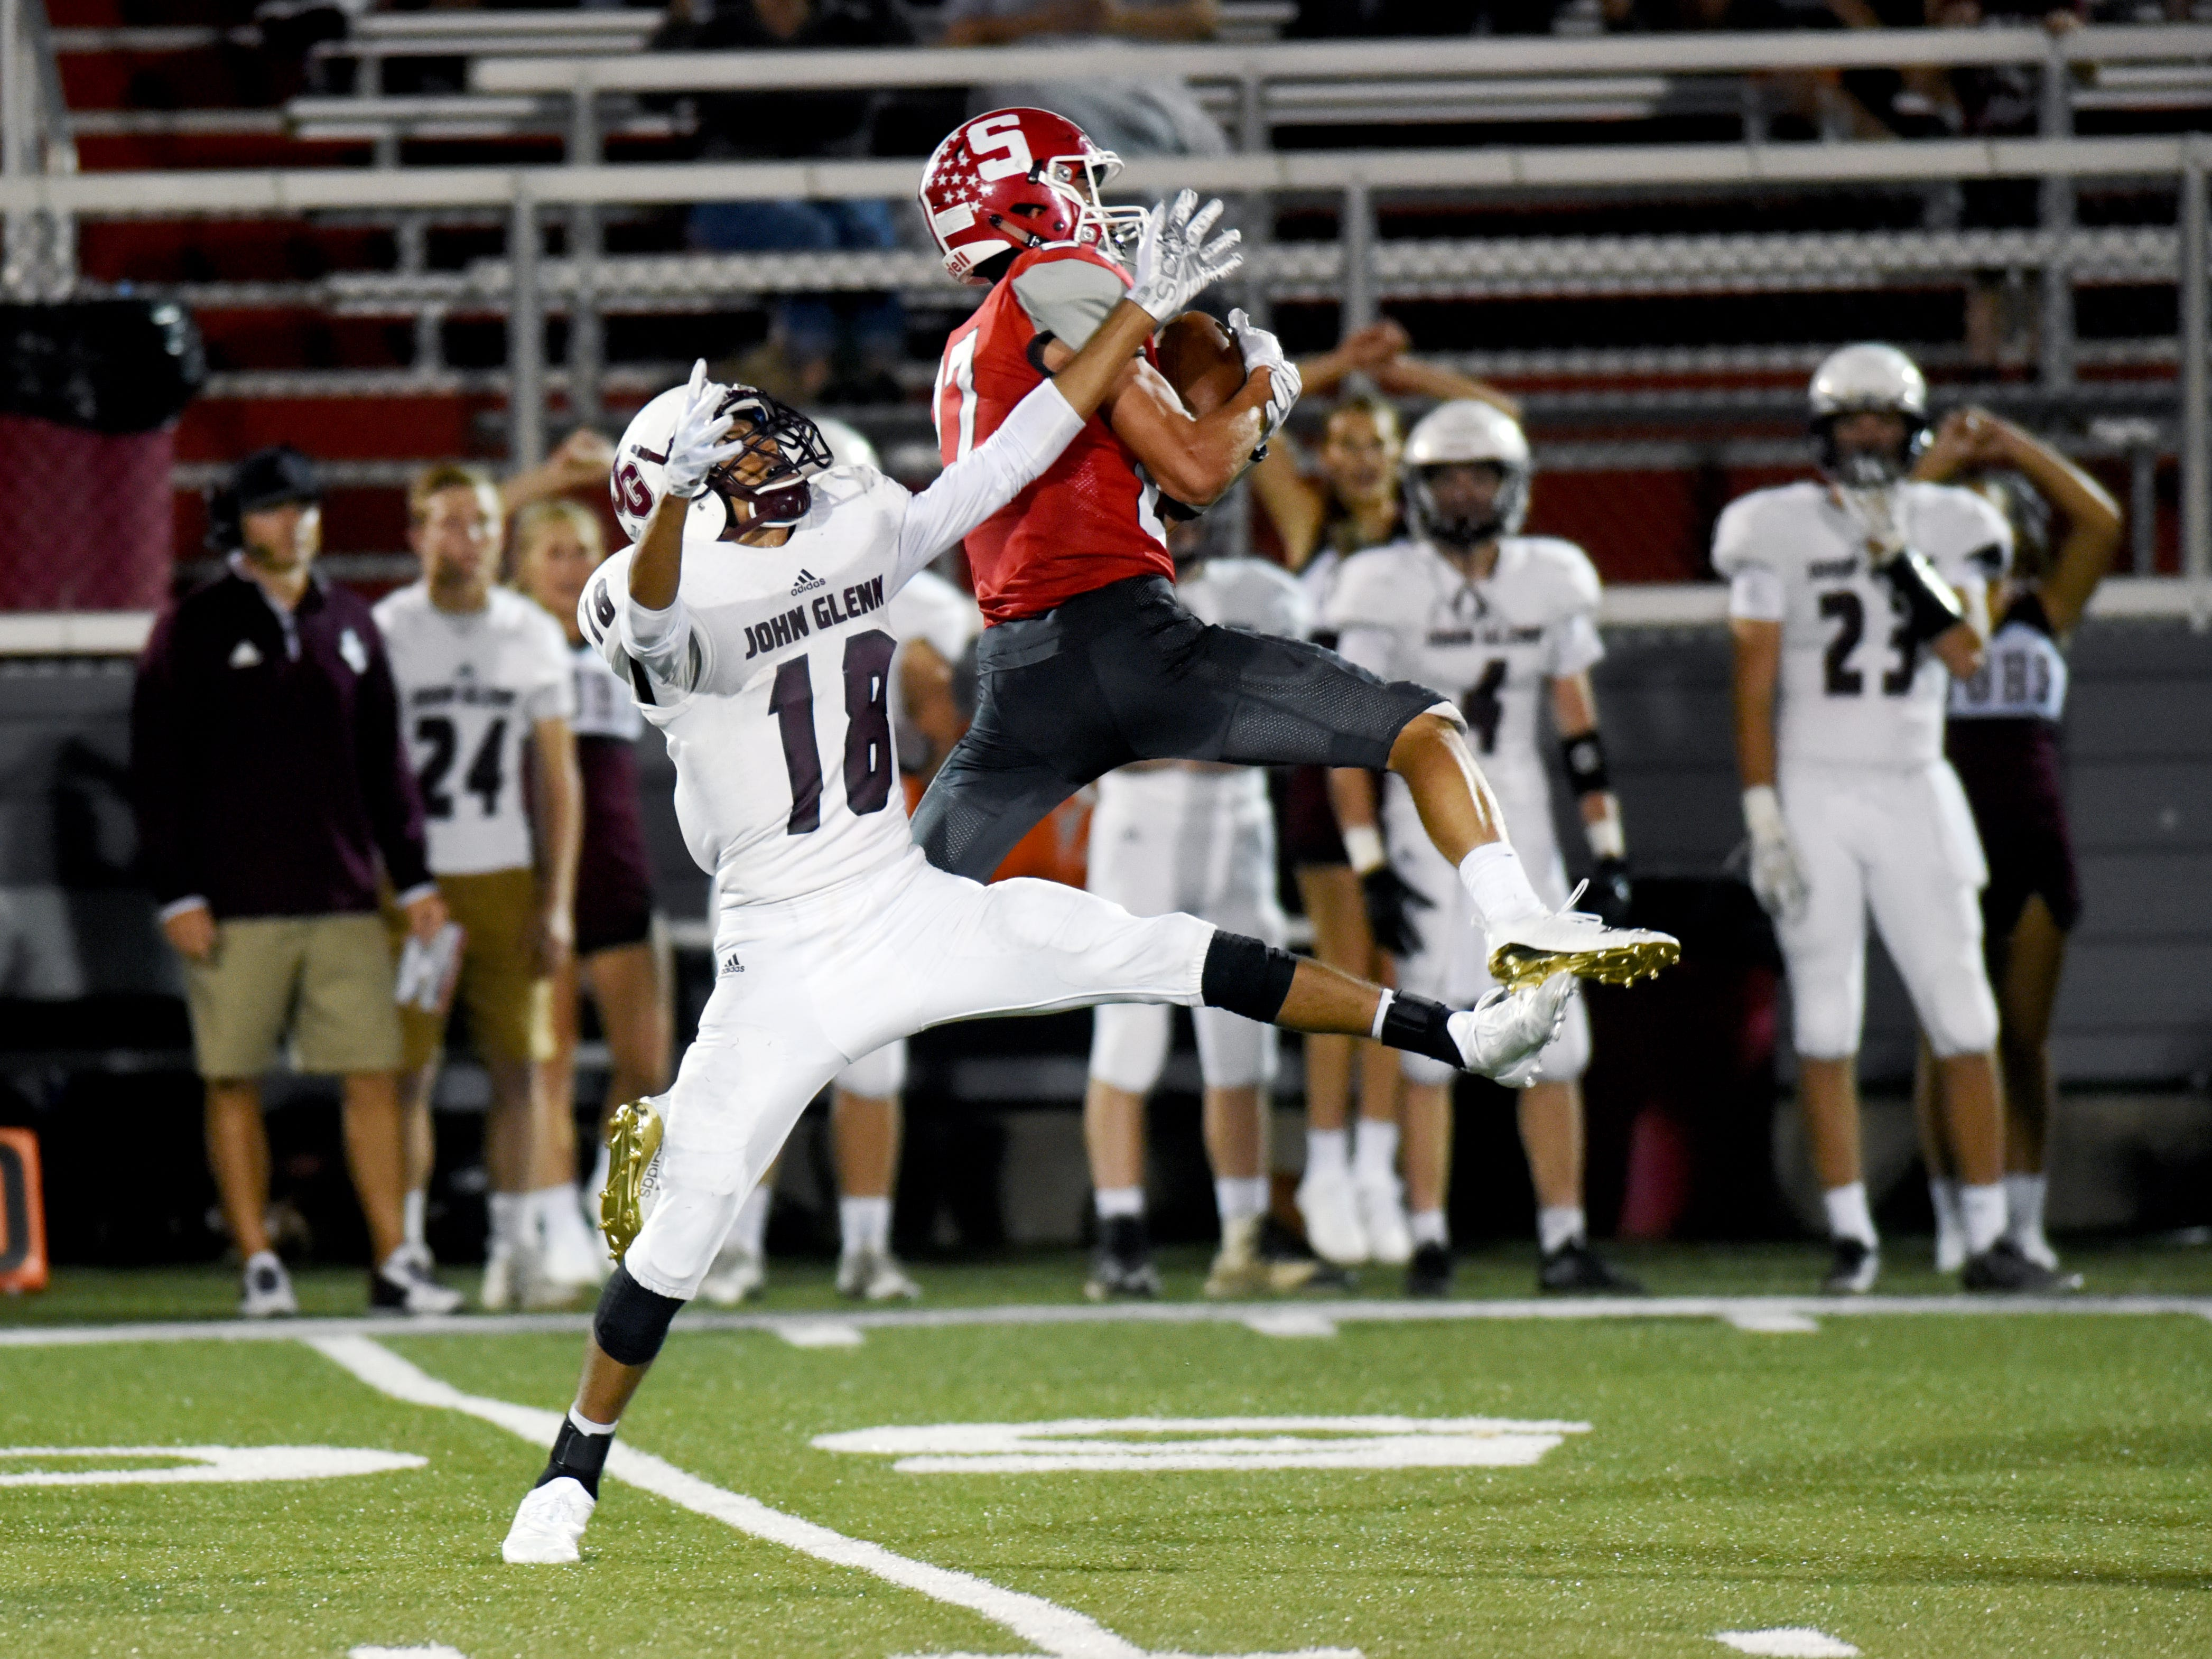 Sheridan's Jacob Rhodes makes a leaping interception in front of John Glenn's Justin Clifford during the Generals' 37-7 win on Friday night at Paul Culver Jr. Stadium. Rhodes also caught a pair of touchdown passes as Sheridan improved to 3-0.